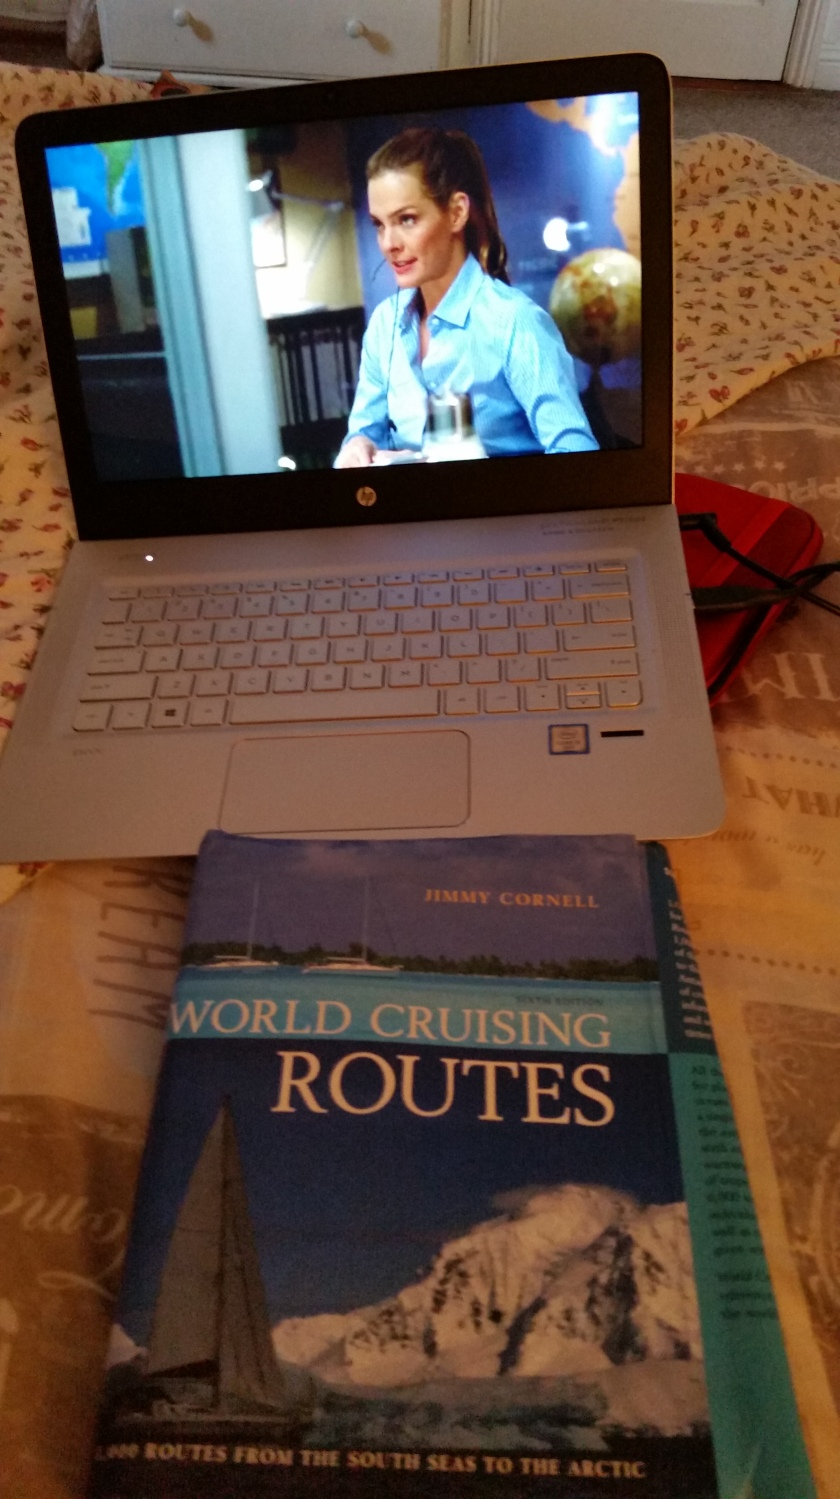 Passing the time watching The Unit, by David Mamet and reviewing World Cruising Routes by Jimmy Cornell